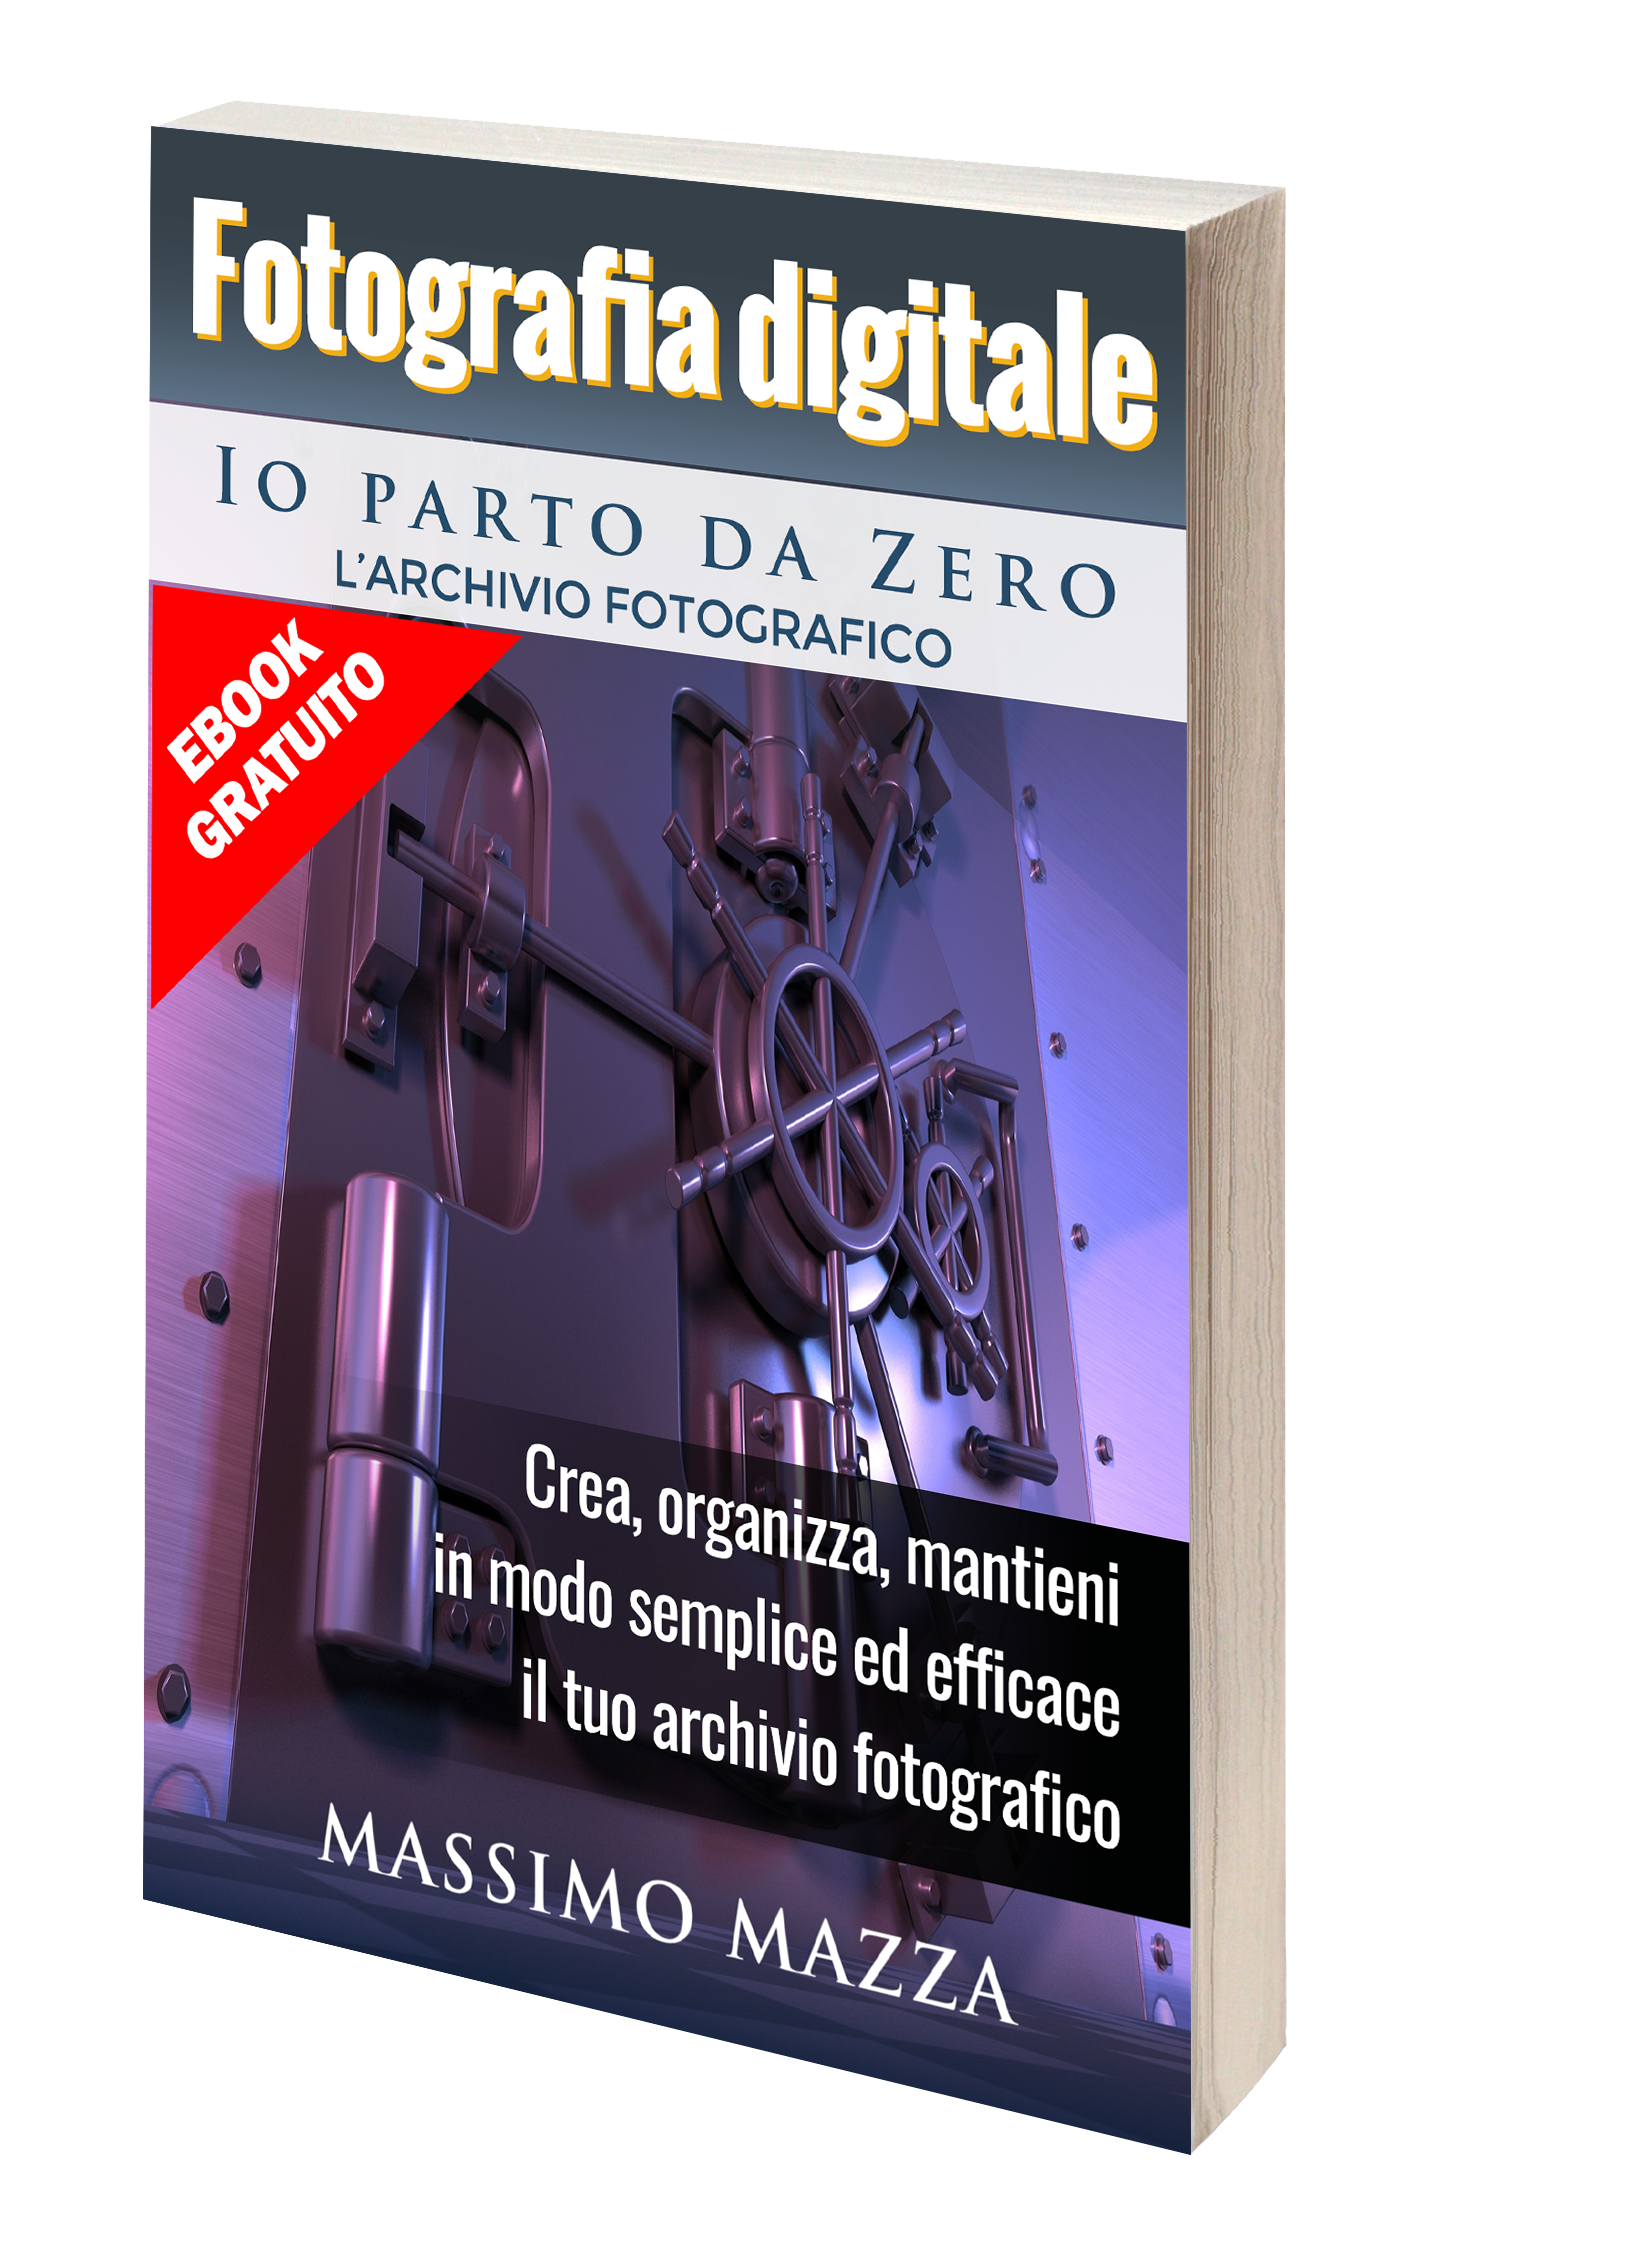 Download gratis libro ebook PDF di fotografia digitale